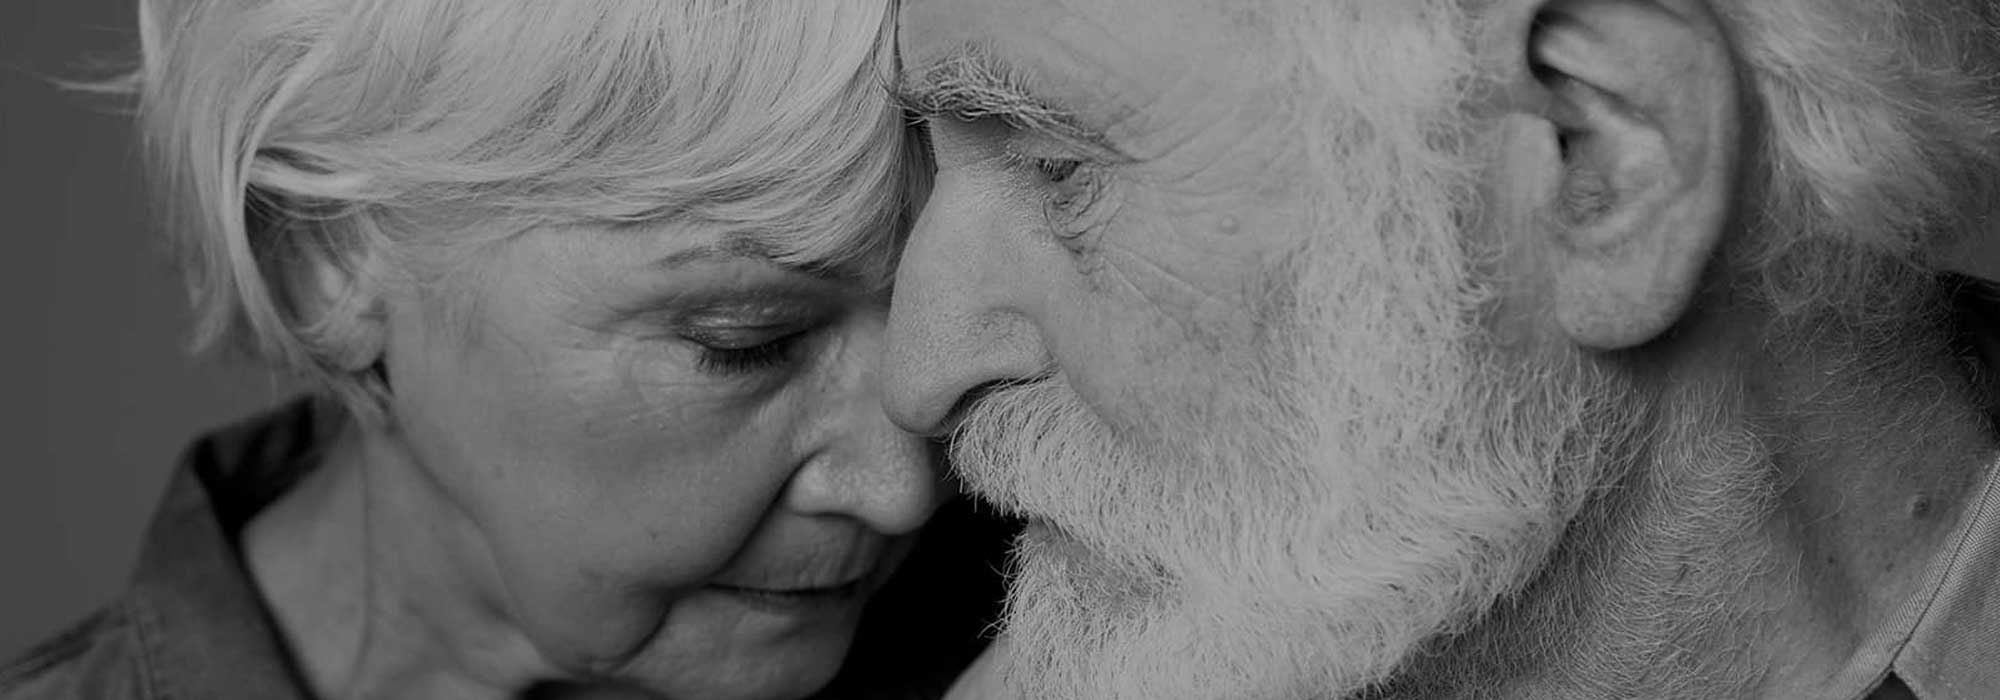 Sombre senior couple holding each other close in b&w